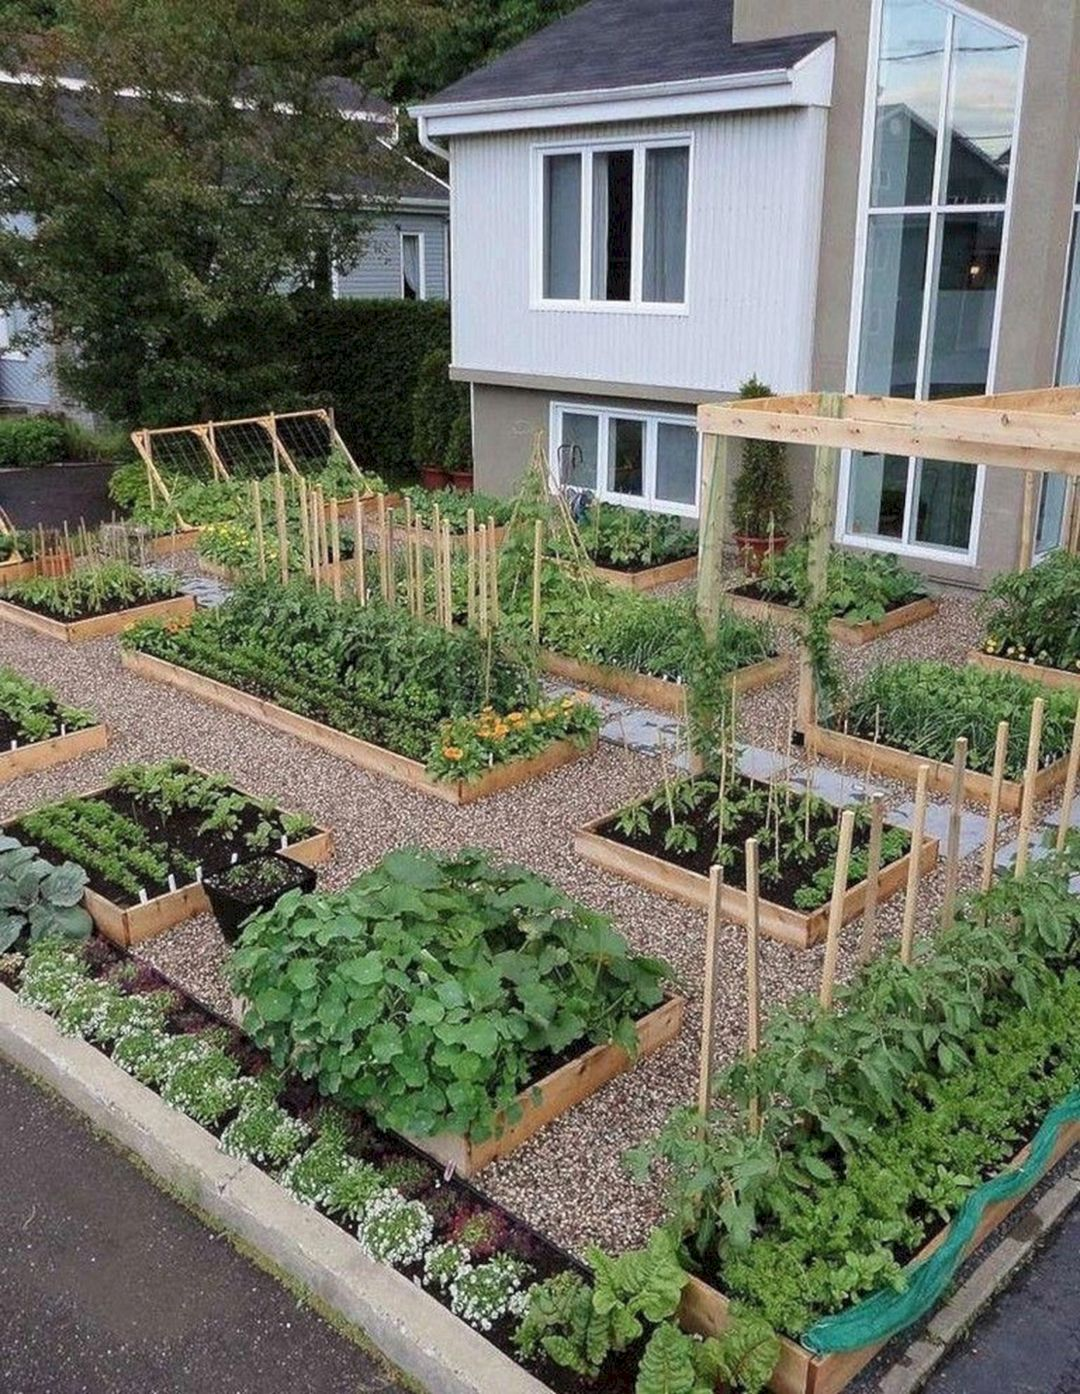 15 Fascinating Fruit And Vegetable Garden Ideas You Need To Try Freshouz Com Garden Design Layout Garden Layout Vegetable Garden Layout